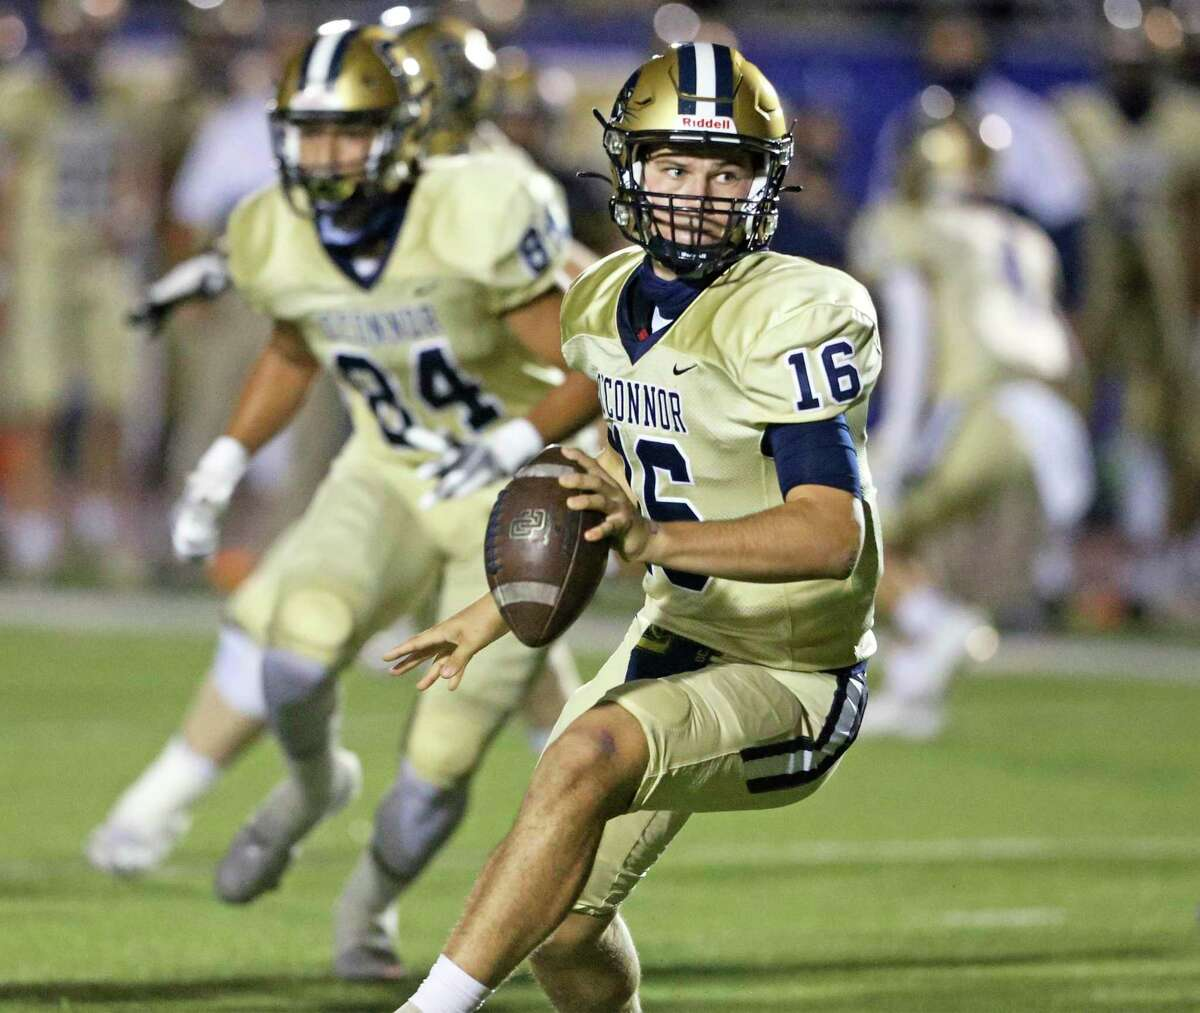 Panther quarterback Caleb Smith looks to pitch the ball back on an option to his running back as Brennan plays O'Connor in high school football at Gustafson Stadiumon Nov. 6, 2020.